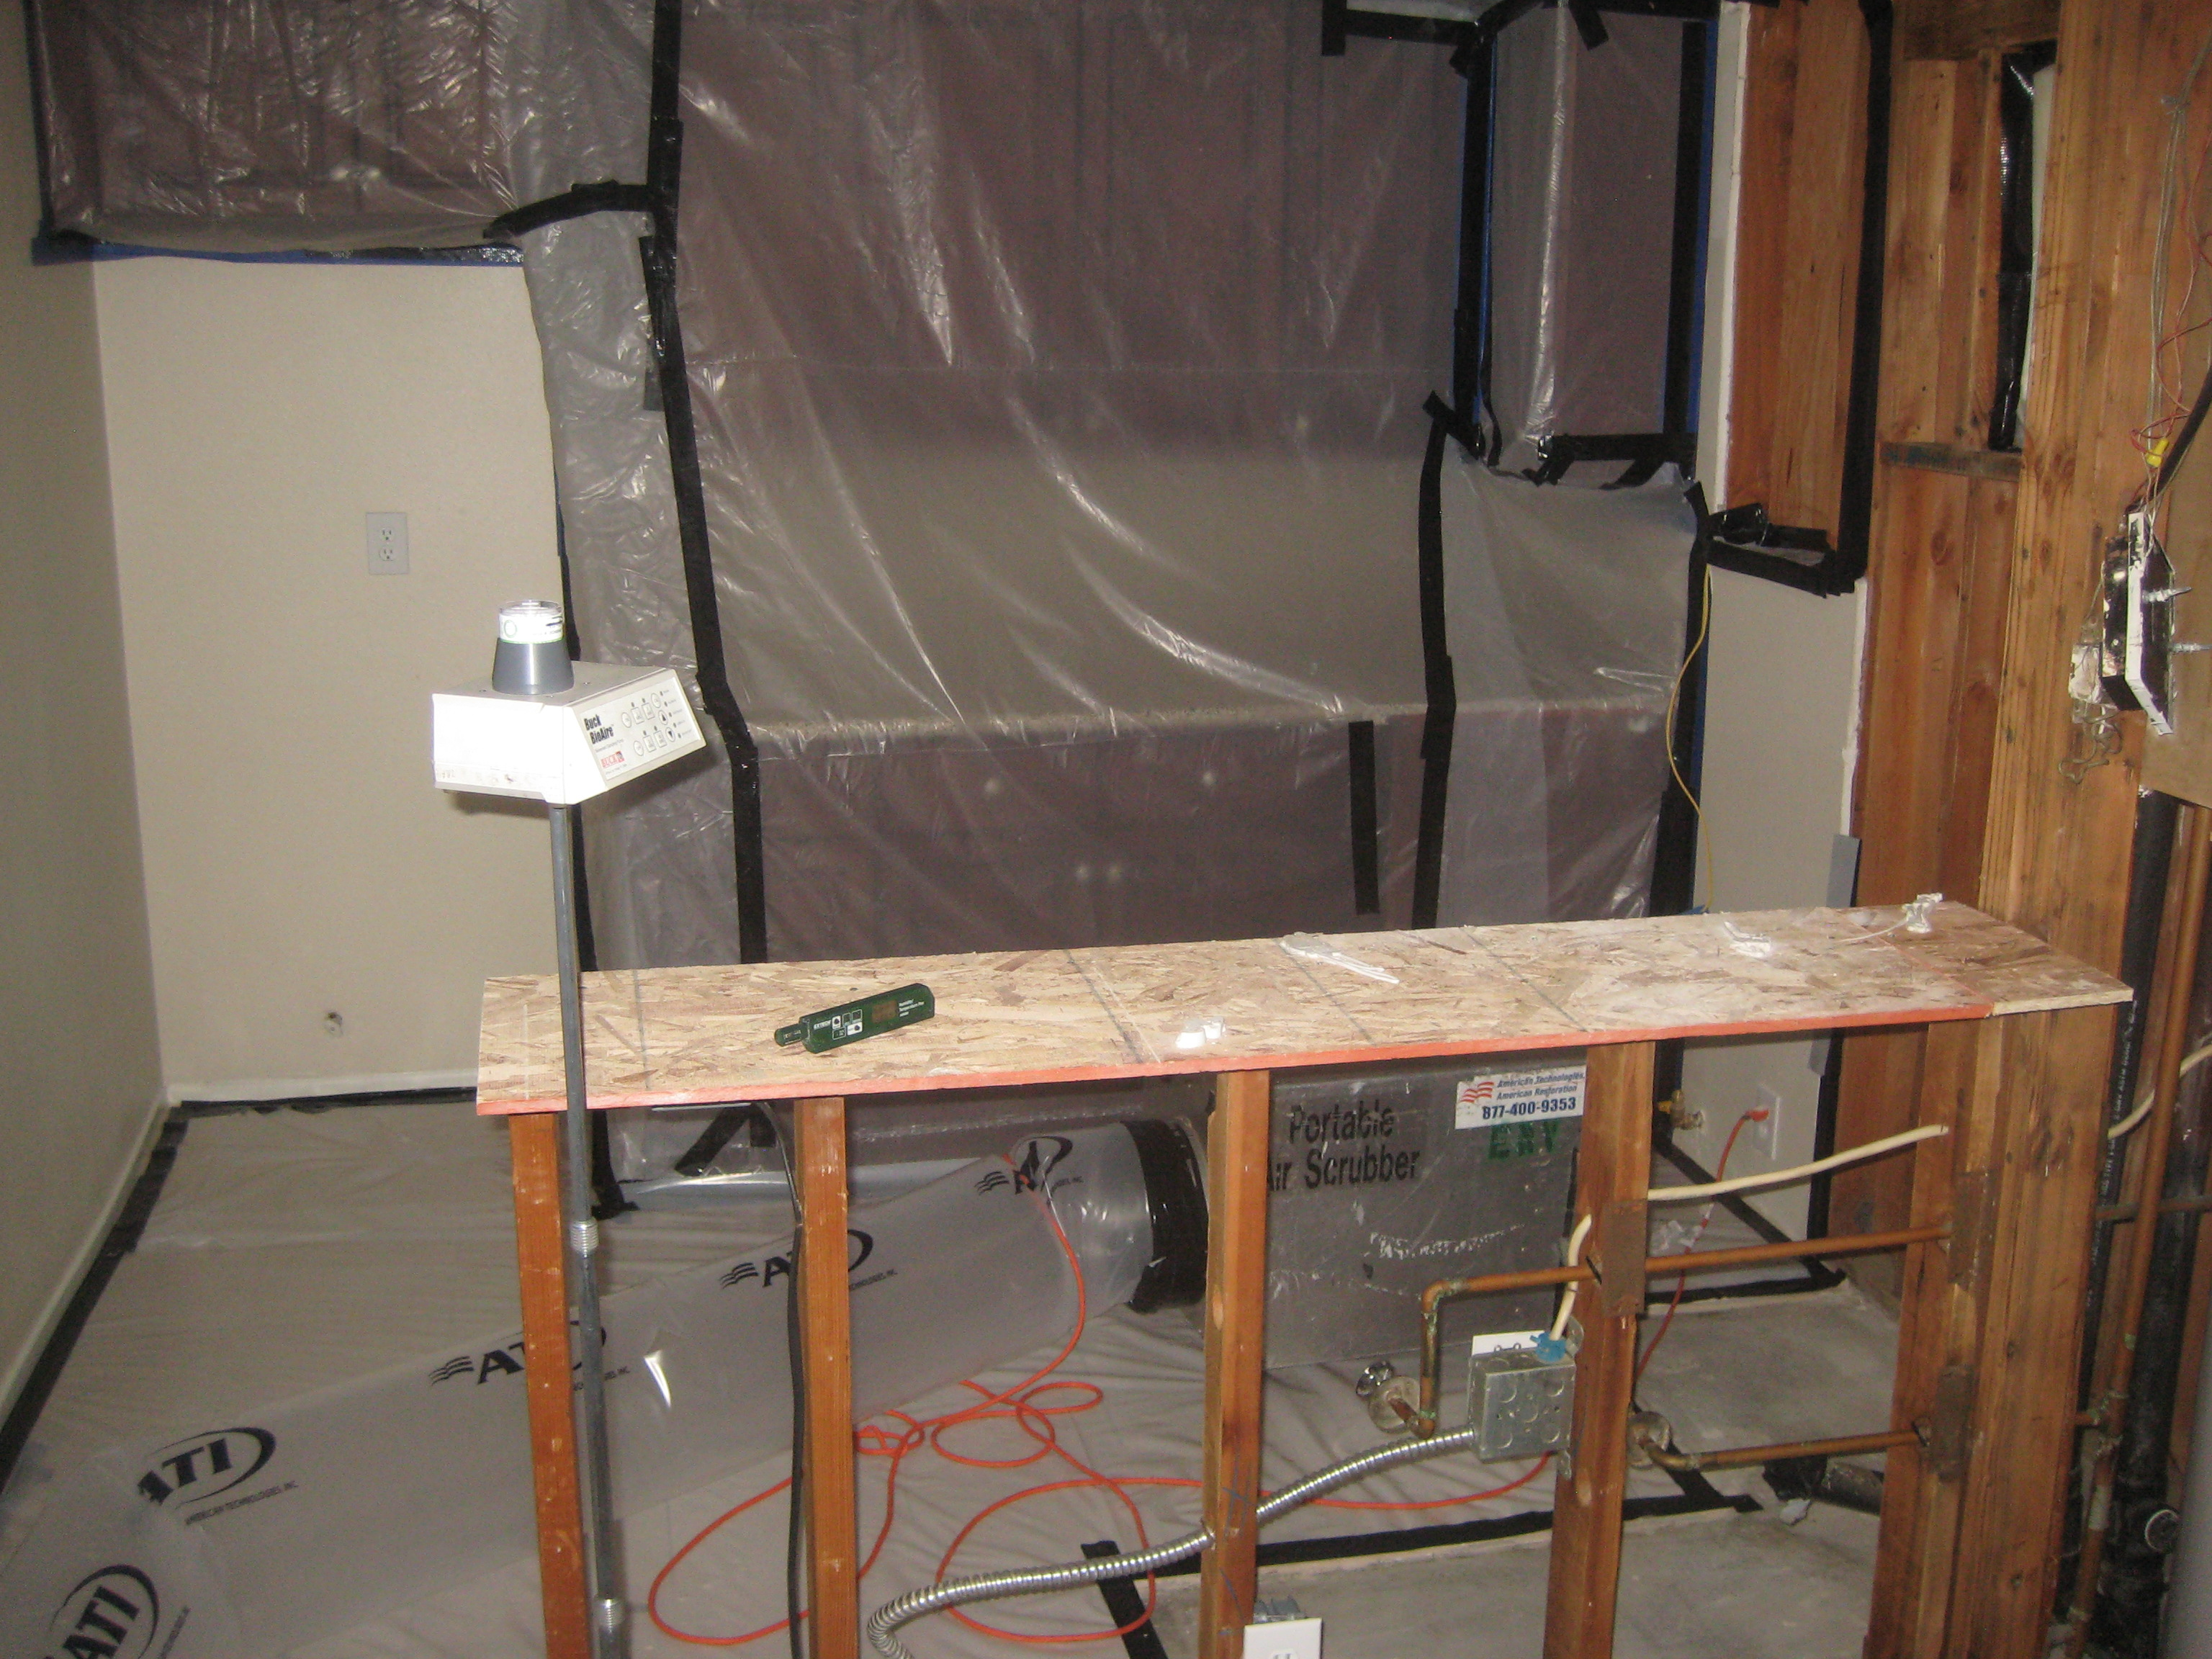 Mold Remediation Inspection | Los Angeles, CA